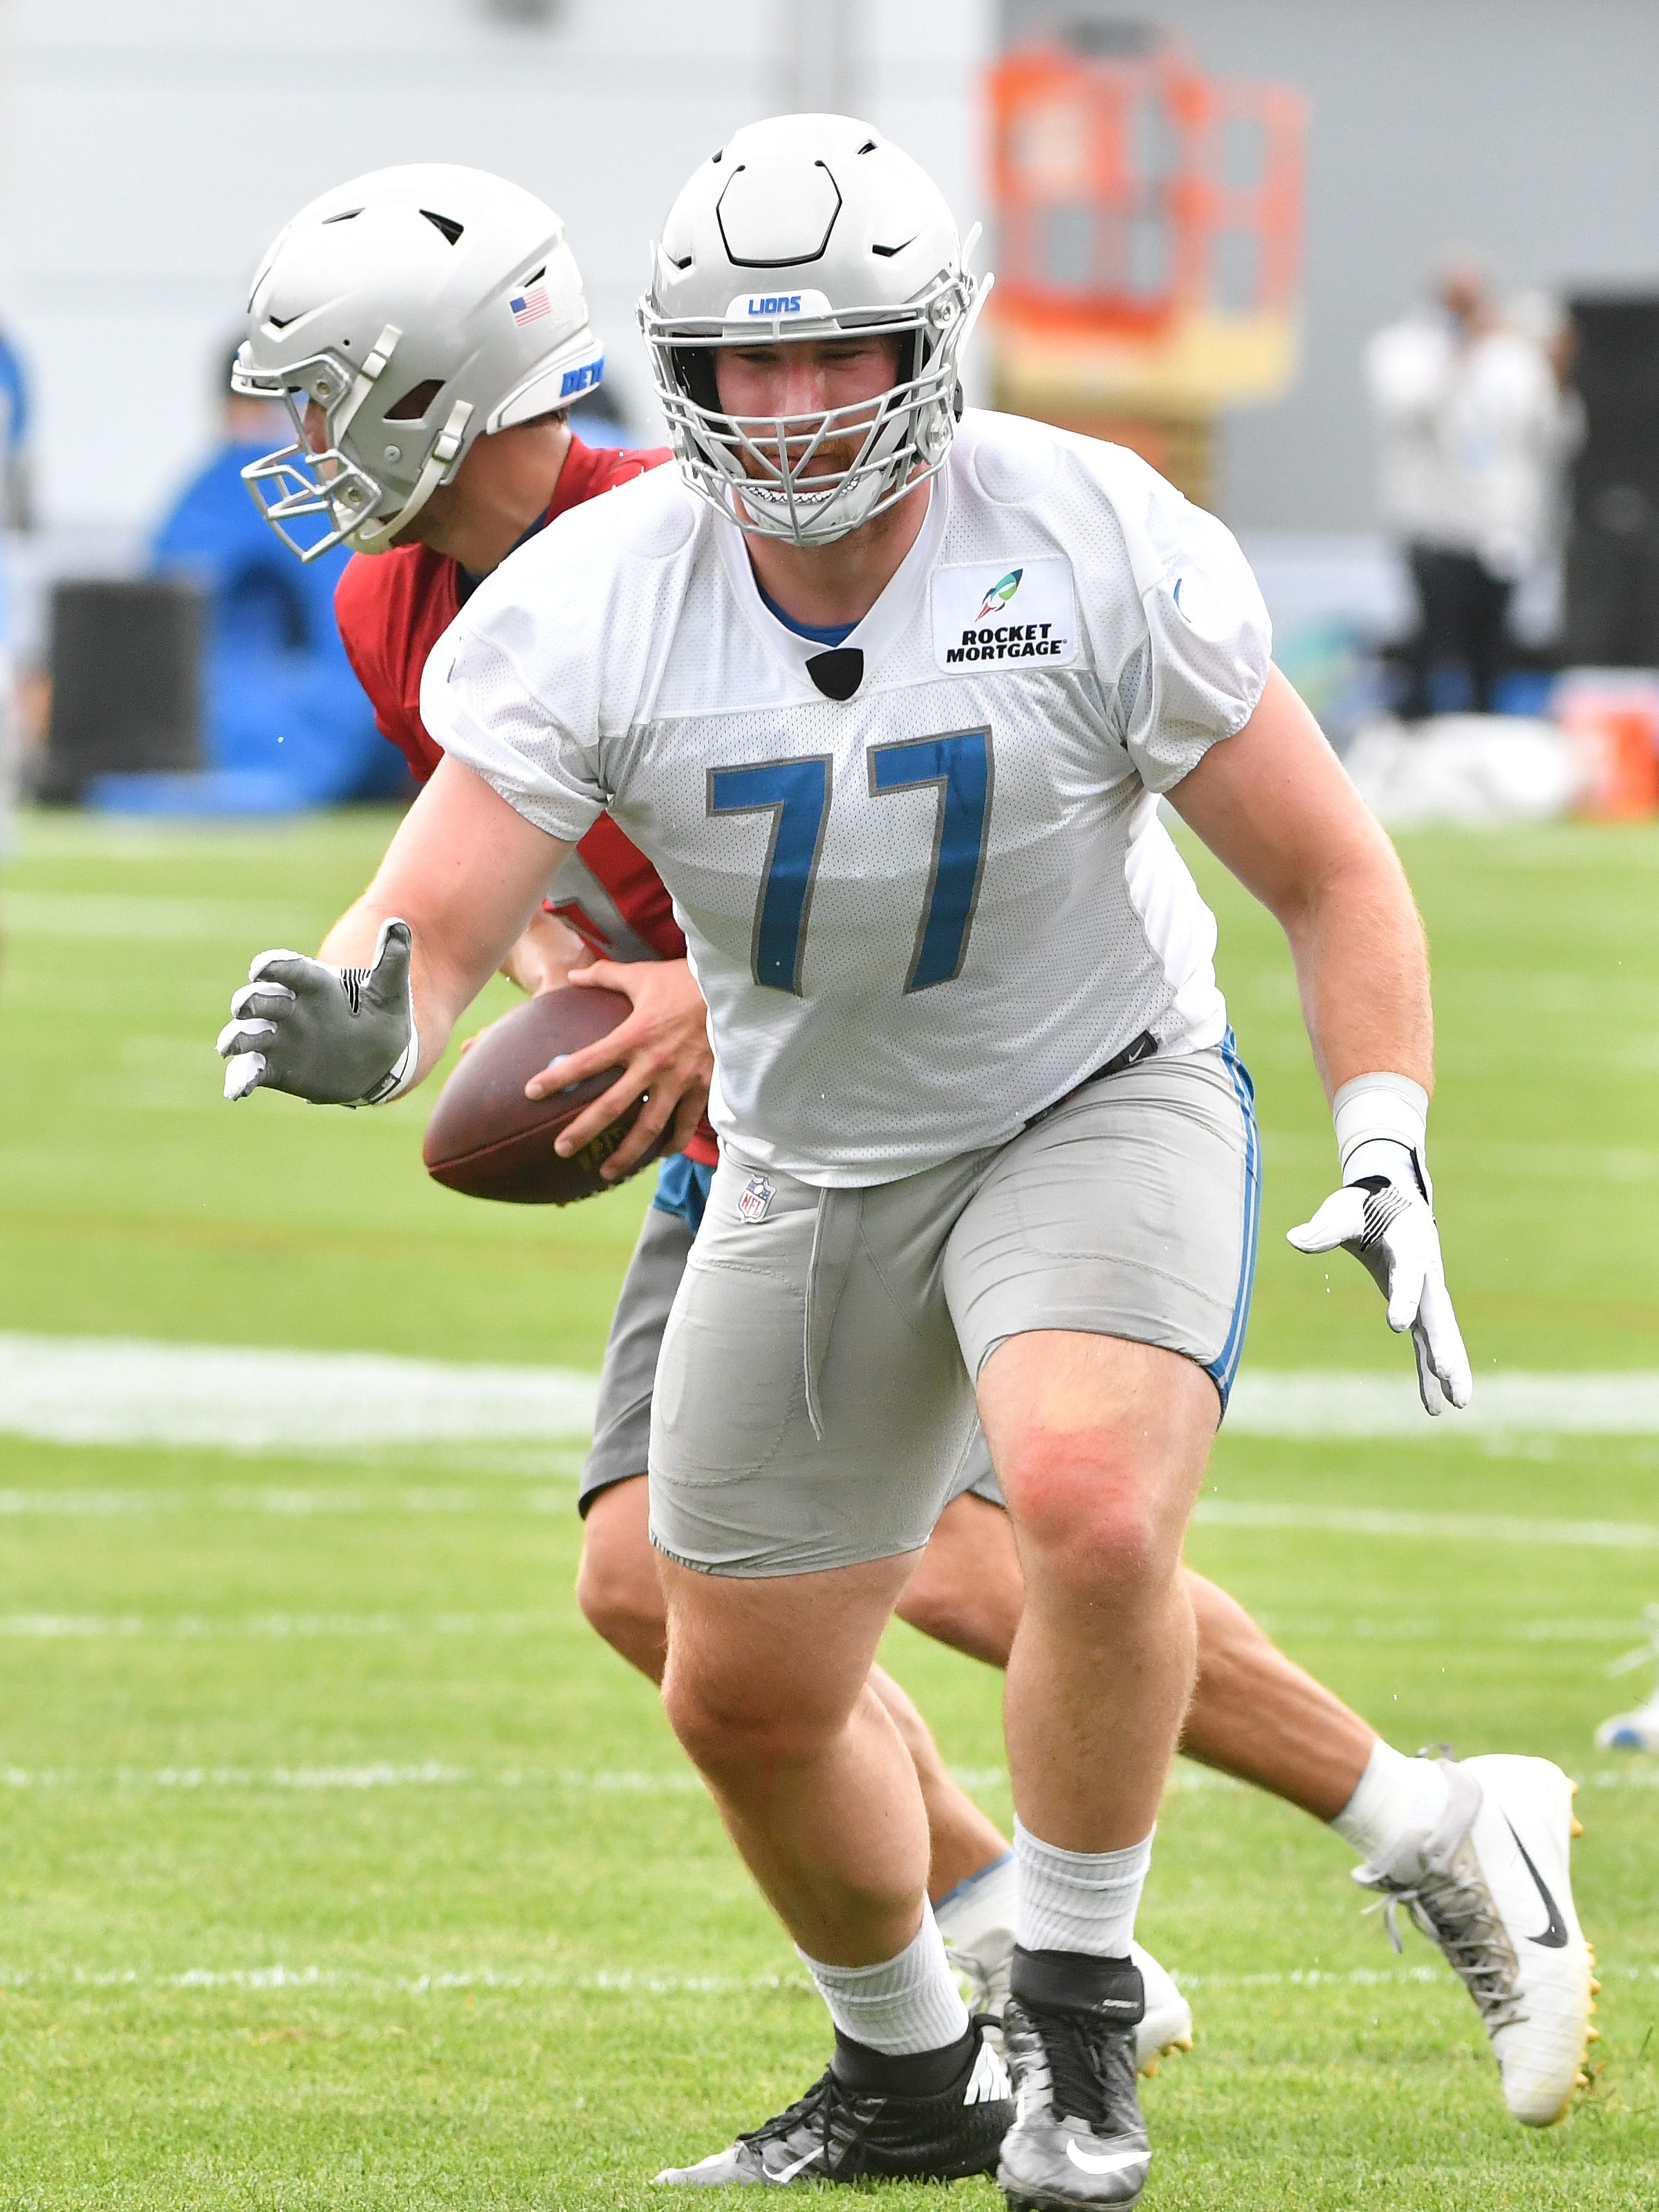 2018 0727 Dm Lions Training Camp0286